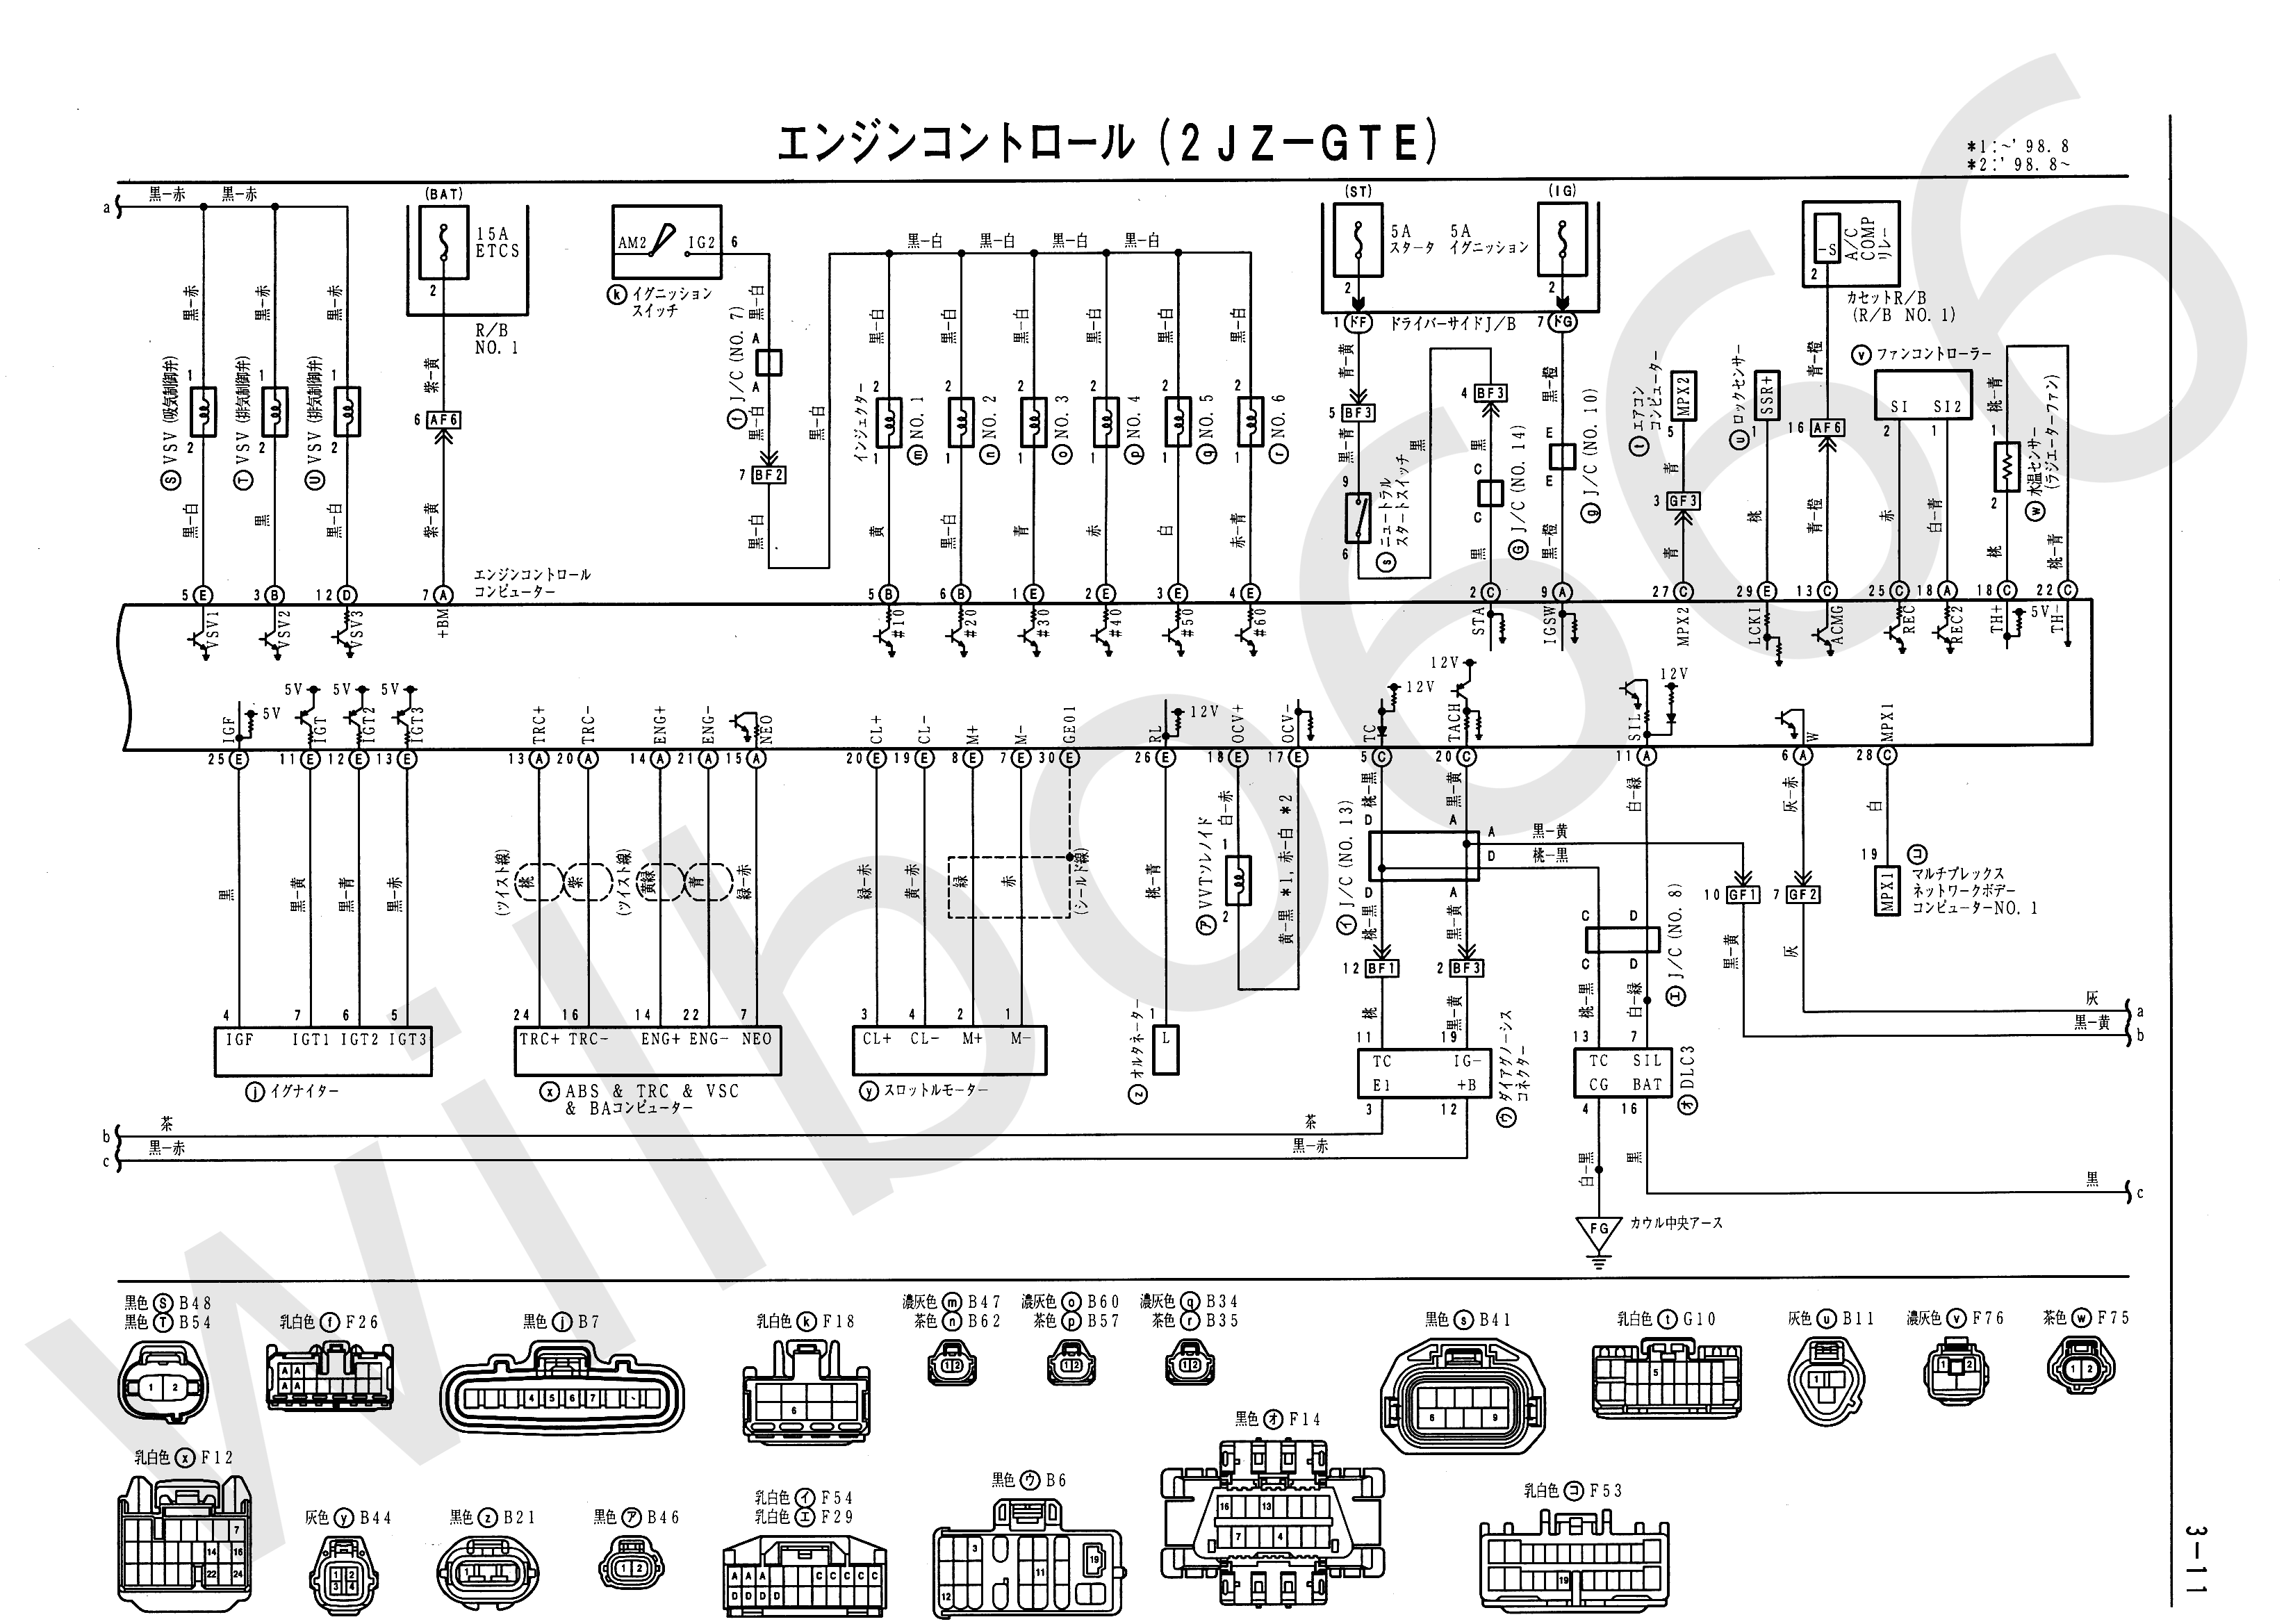 JZS161 Electrical Wiring Diagram 6748505 3 11 wilbo666 2jz gte vvti jzs161 aristo engine wiring toyota highlander ecu wiring diagram at reclaimingppi.co